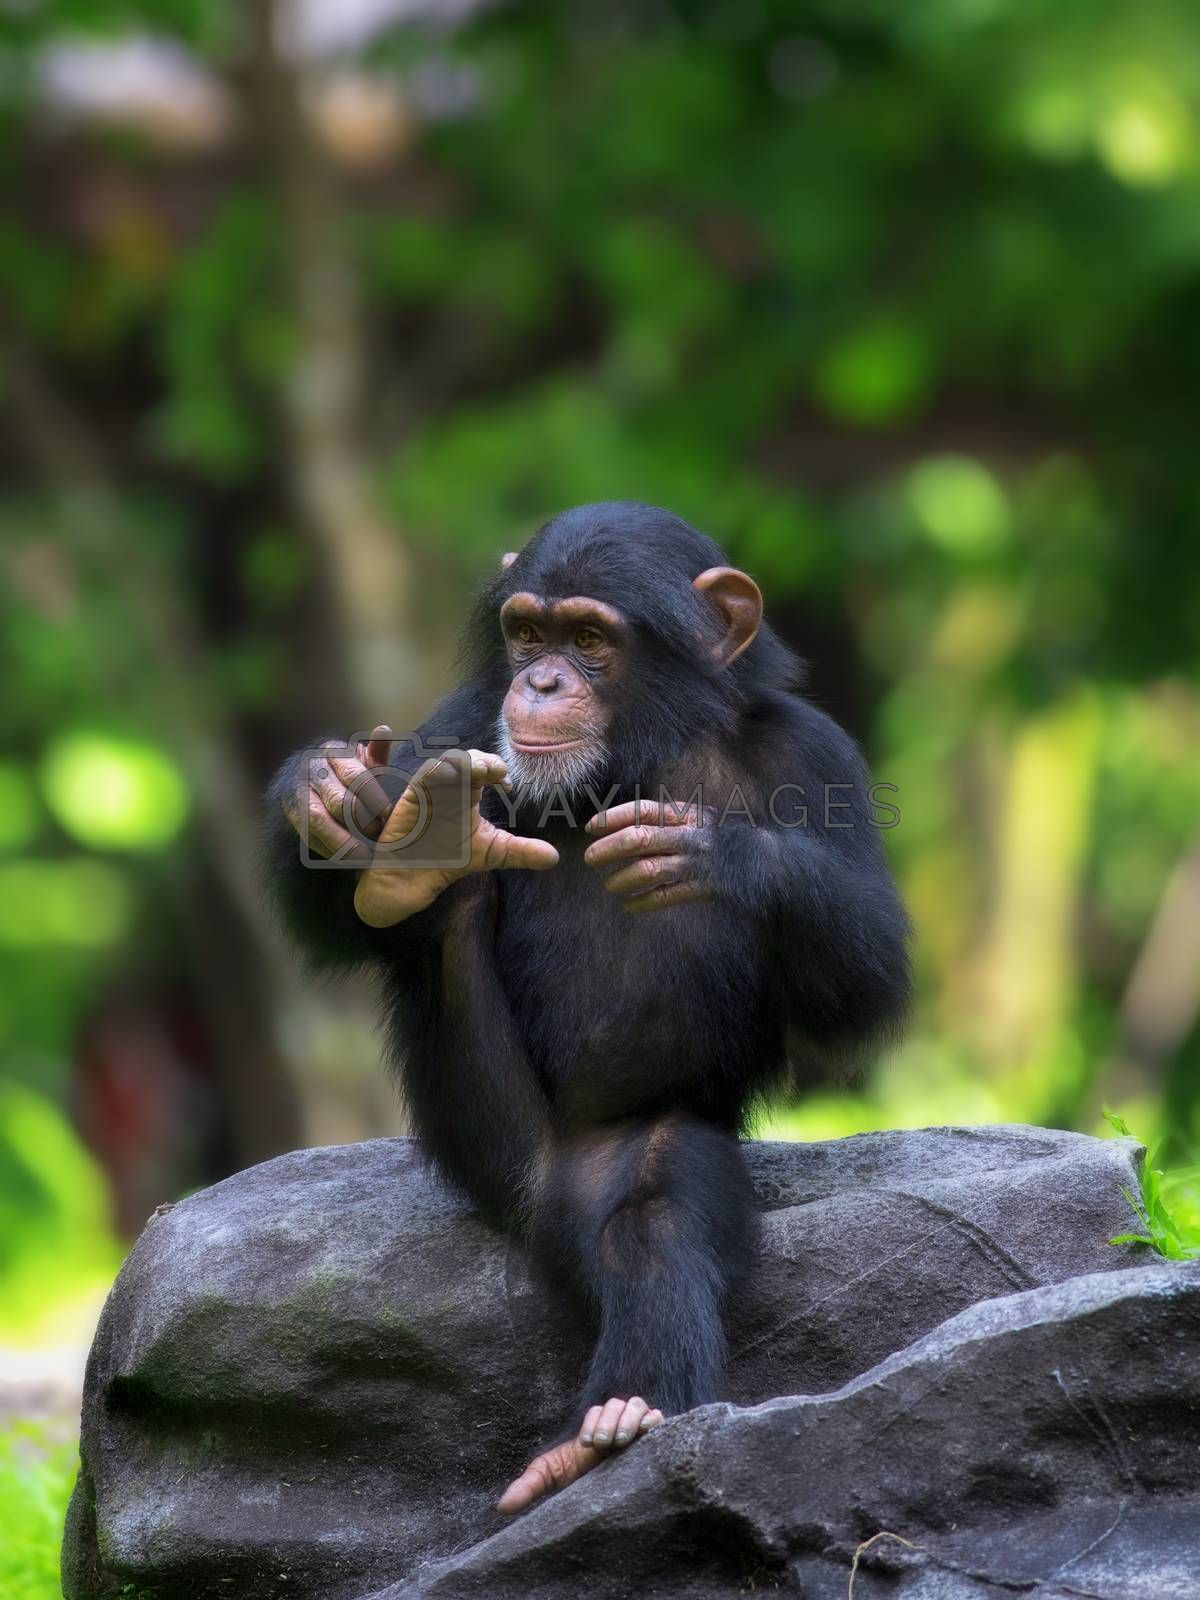 Common Chimpanzee by kjorgen